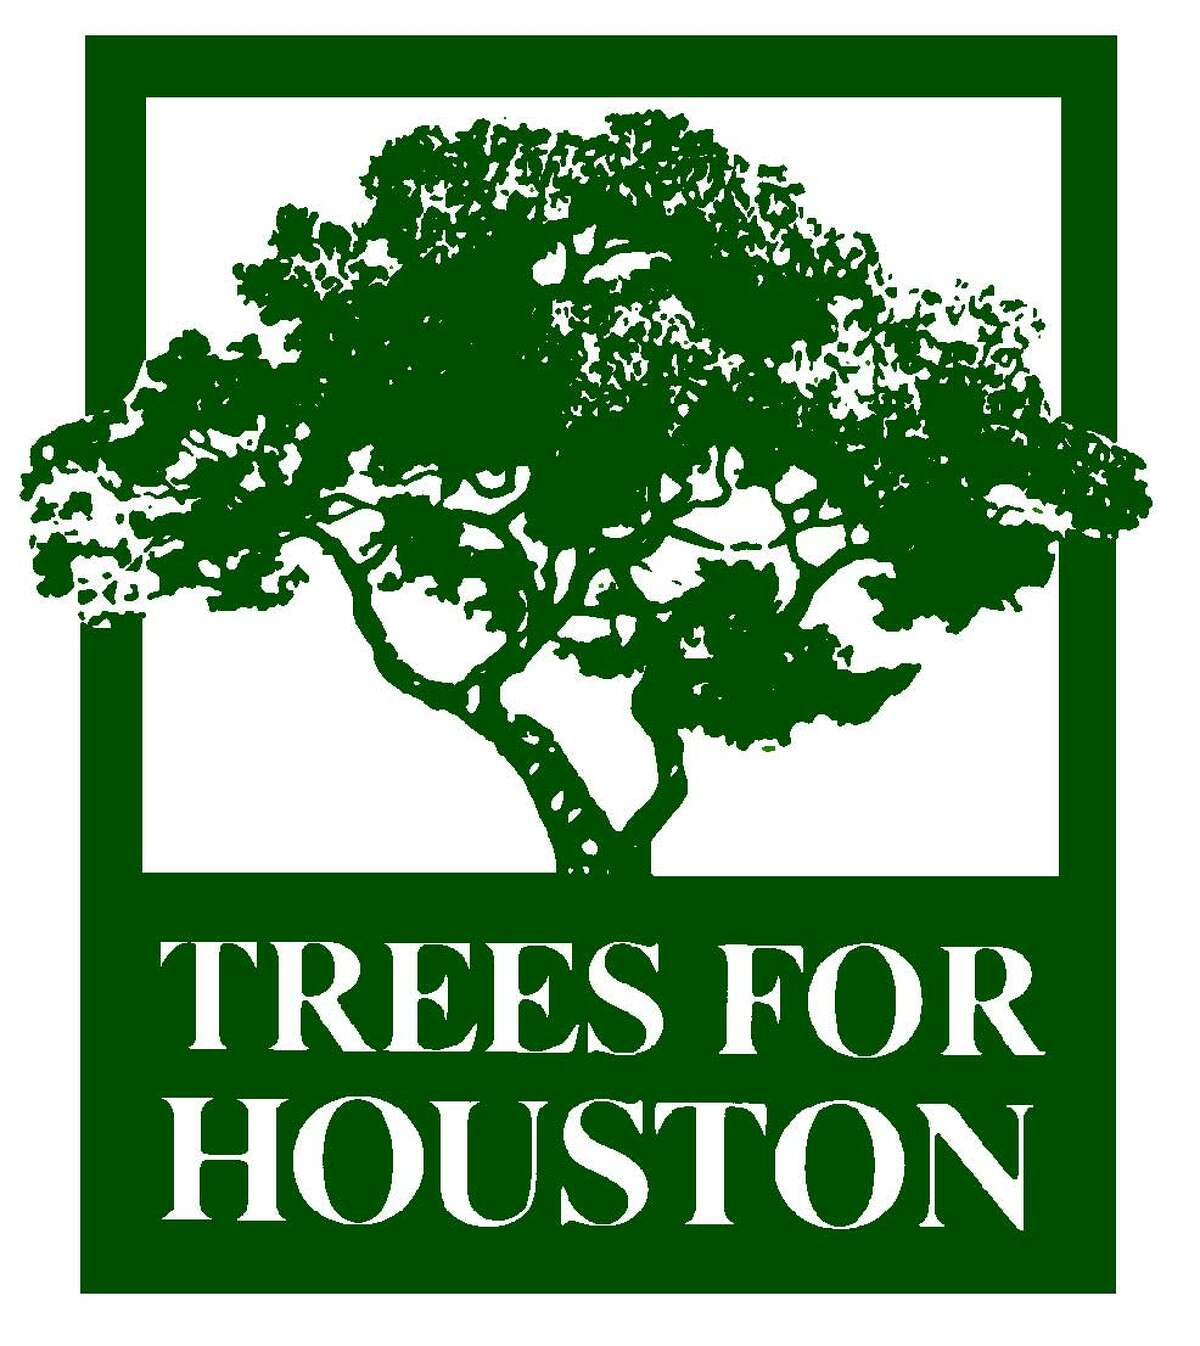 Trees For Houston is an non-profit organization that was formed with the mission to plant or provide trees for planting for public benefit. (Courtesy Trees For Houston)